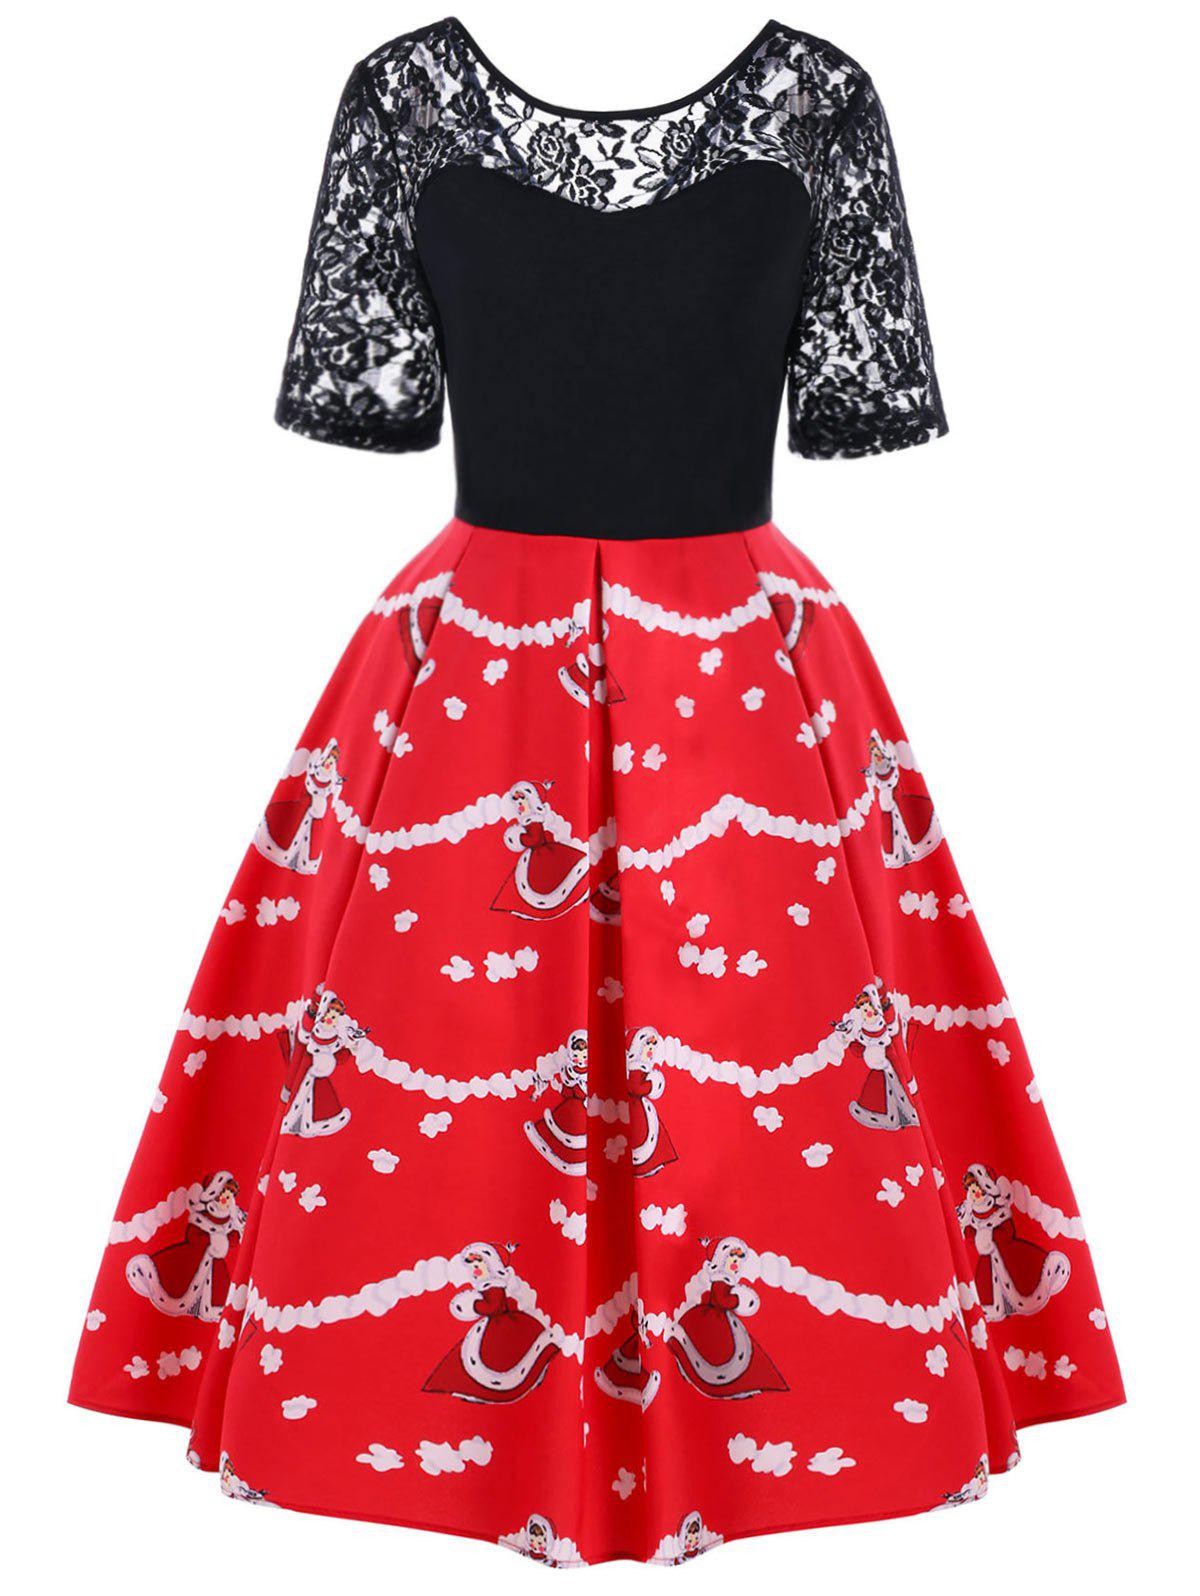 Christmas Lace Yoke Swing DressWOMEN<br><br>Size: 2XL; Color: BLACK AND RED; Style: Vintage; Material: Polyester; Silhouette: A-Line; Dress Type: Swing Dress; Dresses Length: Knee-Length; Neckline: Round Collar; Sleeve Length: Short Sleeves; Embellishment: Lace; Pattern Type: Floral; With Belt: No; Season: Fall,Spring; Weight: 0.2300kg; Package Contents: 1 x Dress;